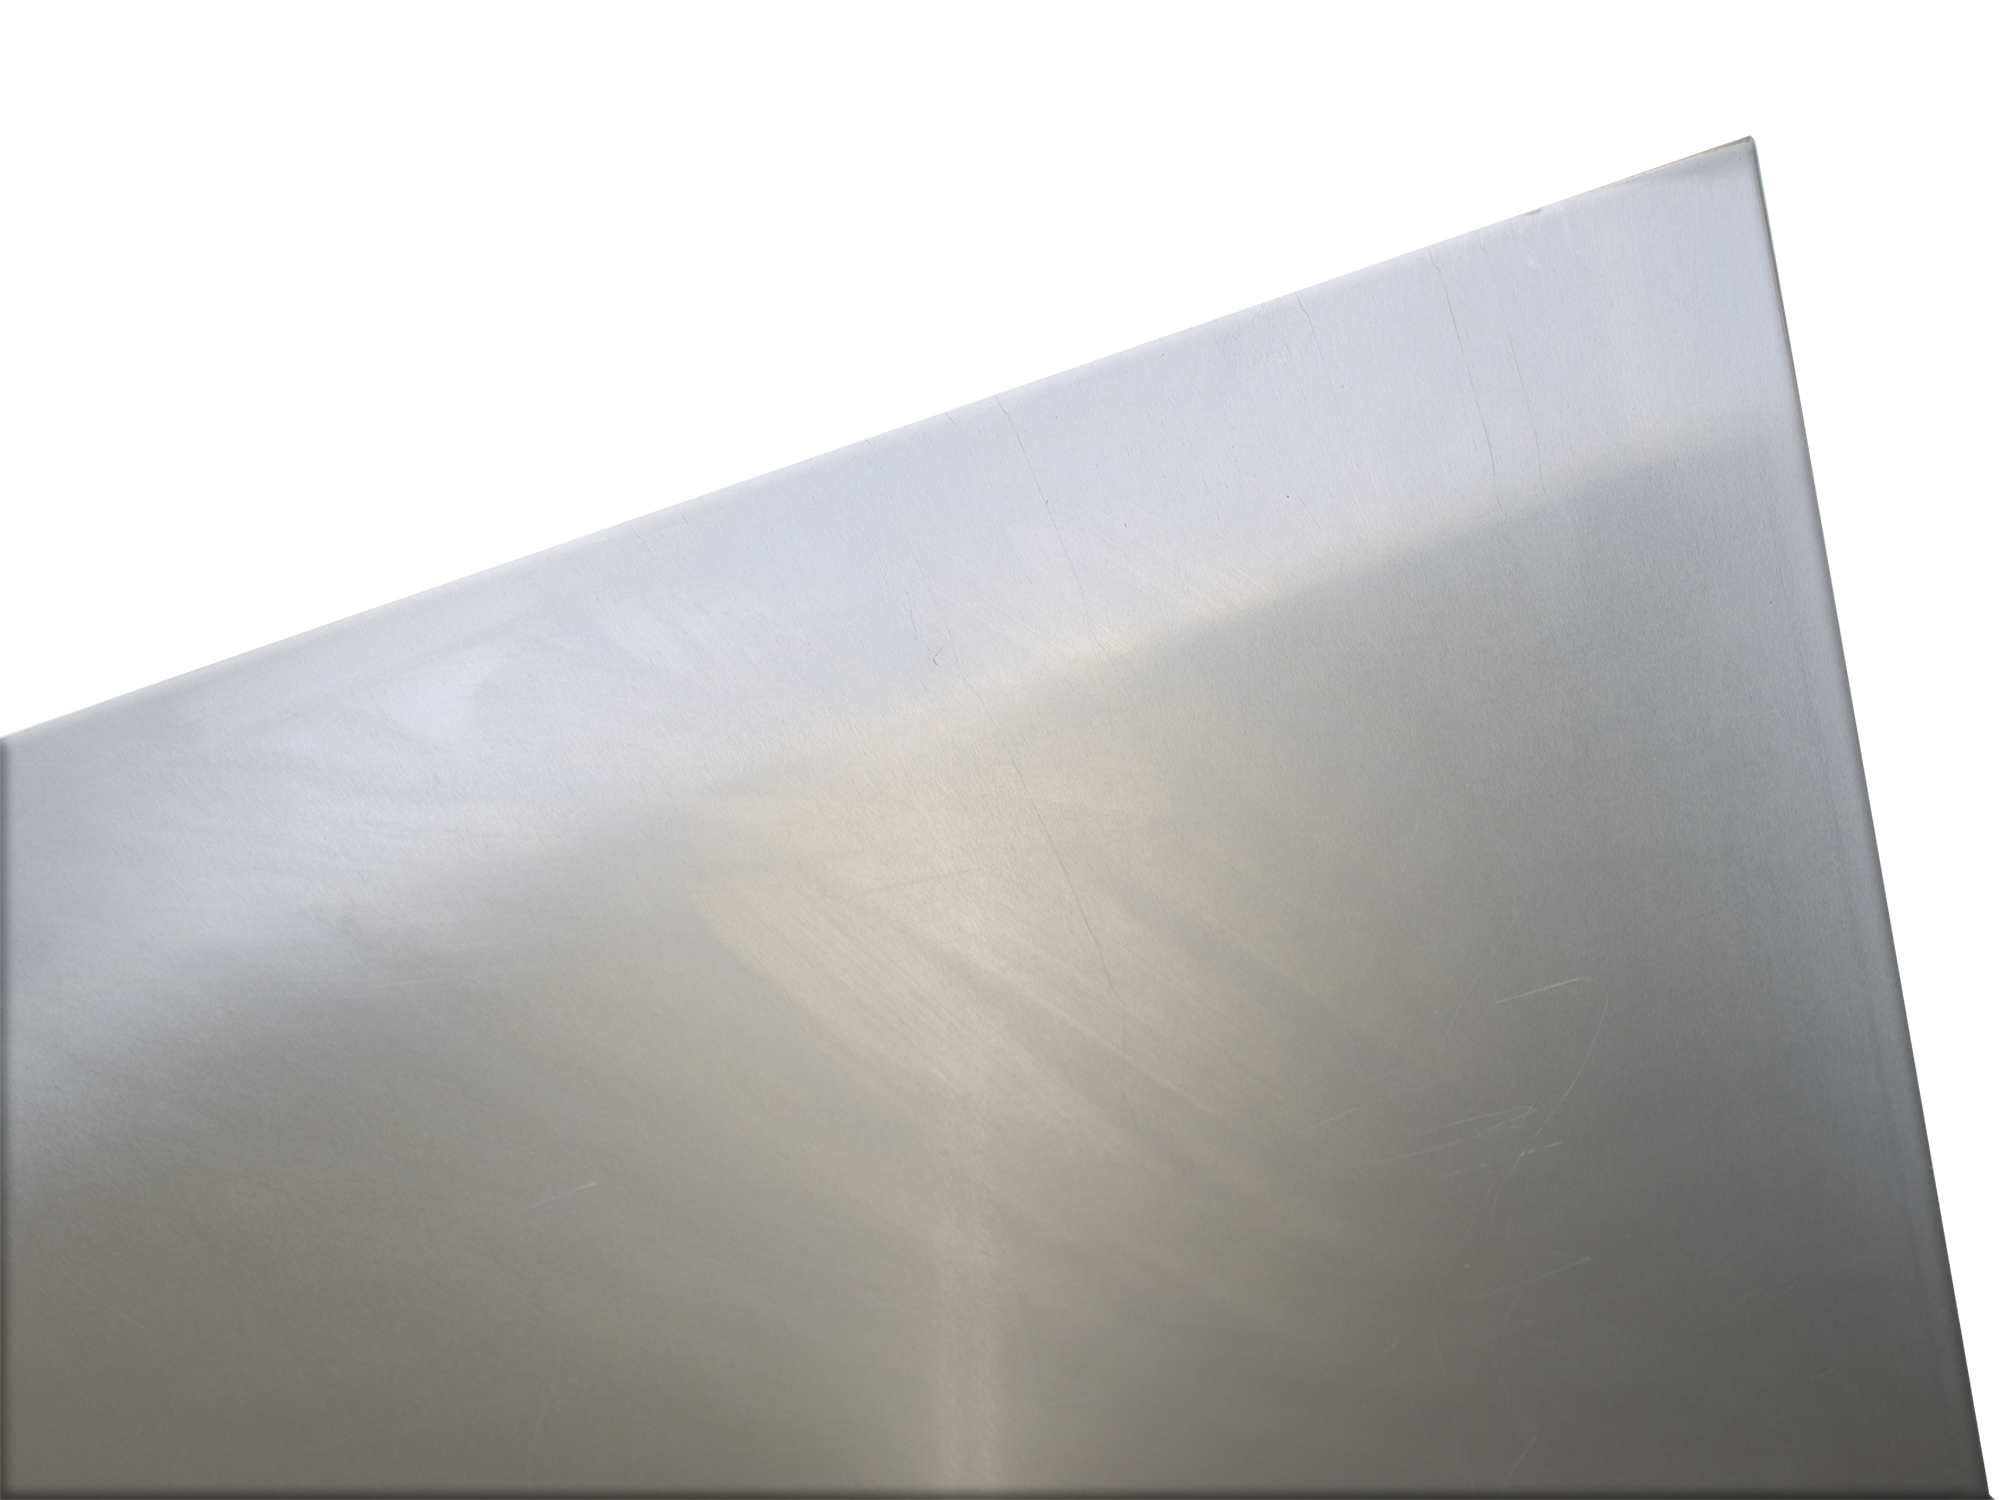 plaat aluminium 1000 x 500 x 4,0mm